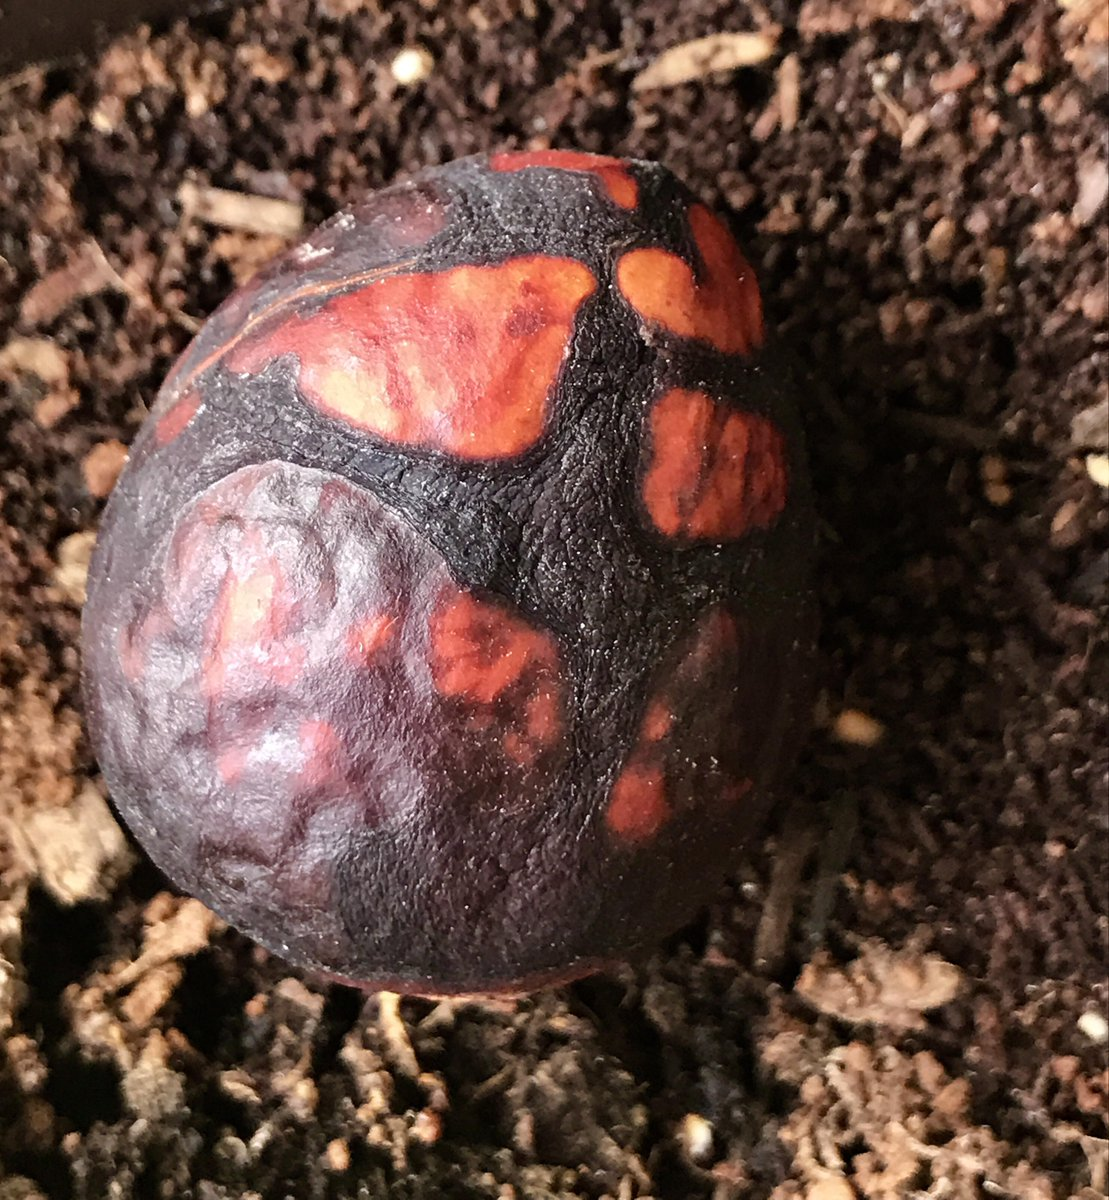 war dragons on twitter hold up real life dragon egg spotted